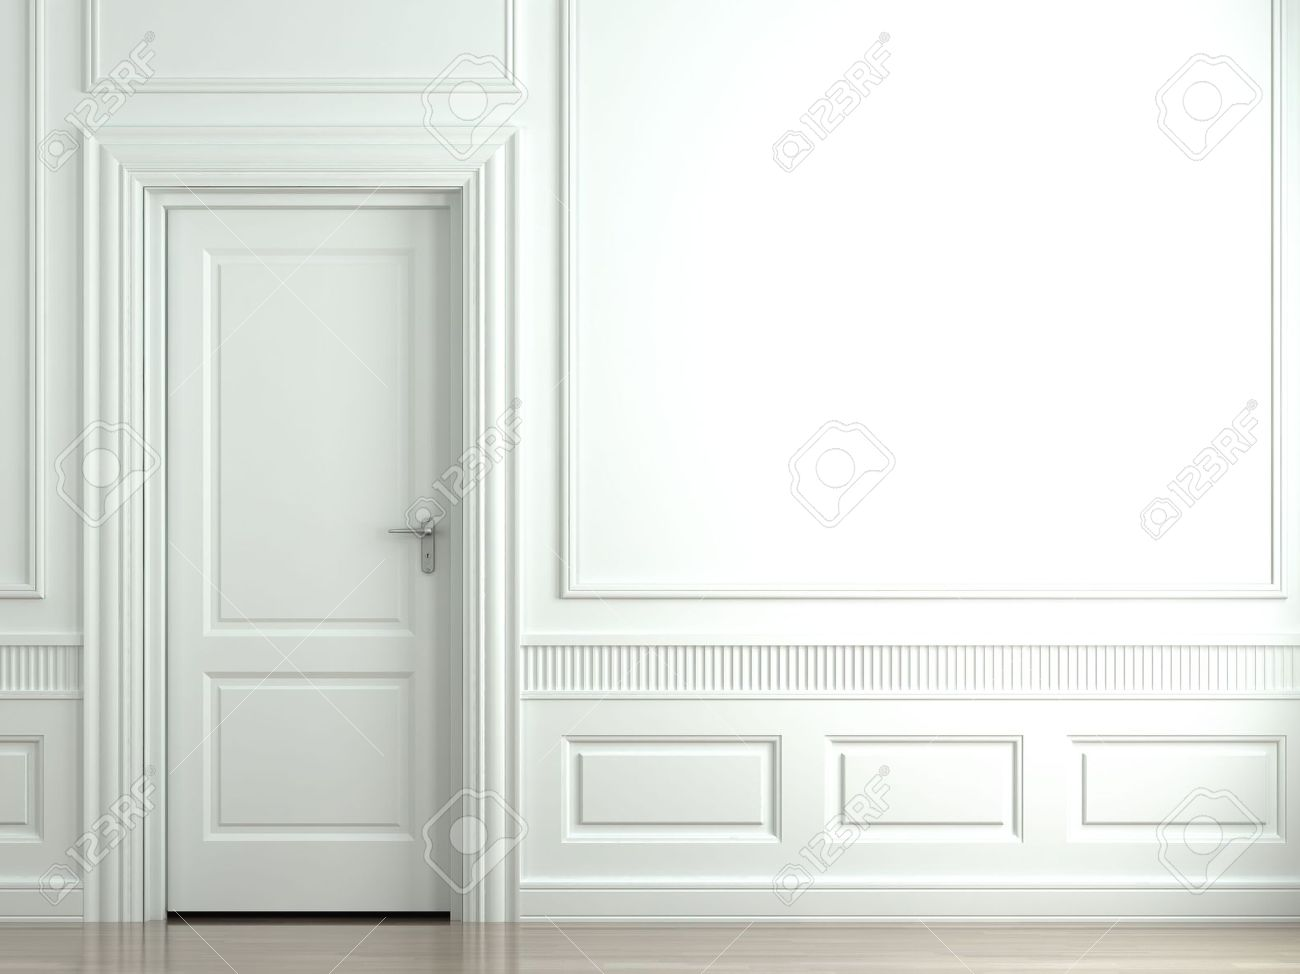 3d scene of a white classic wall with door and moldings Stock Photo - 4574376